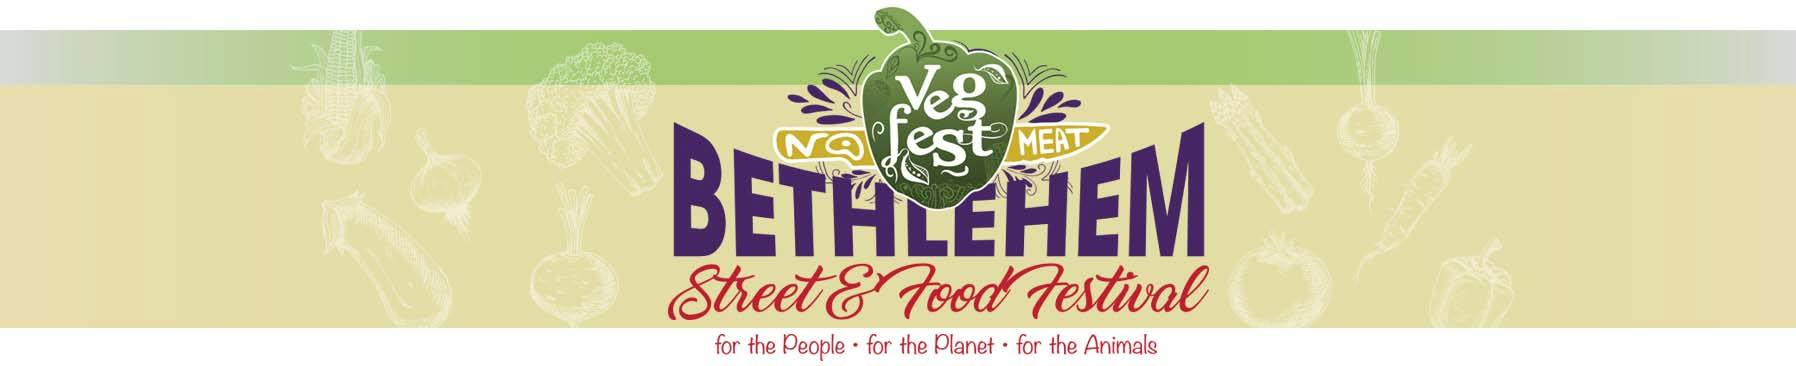 The banner to promote Bethlehem Vegfest